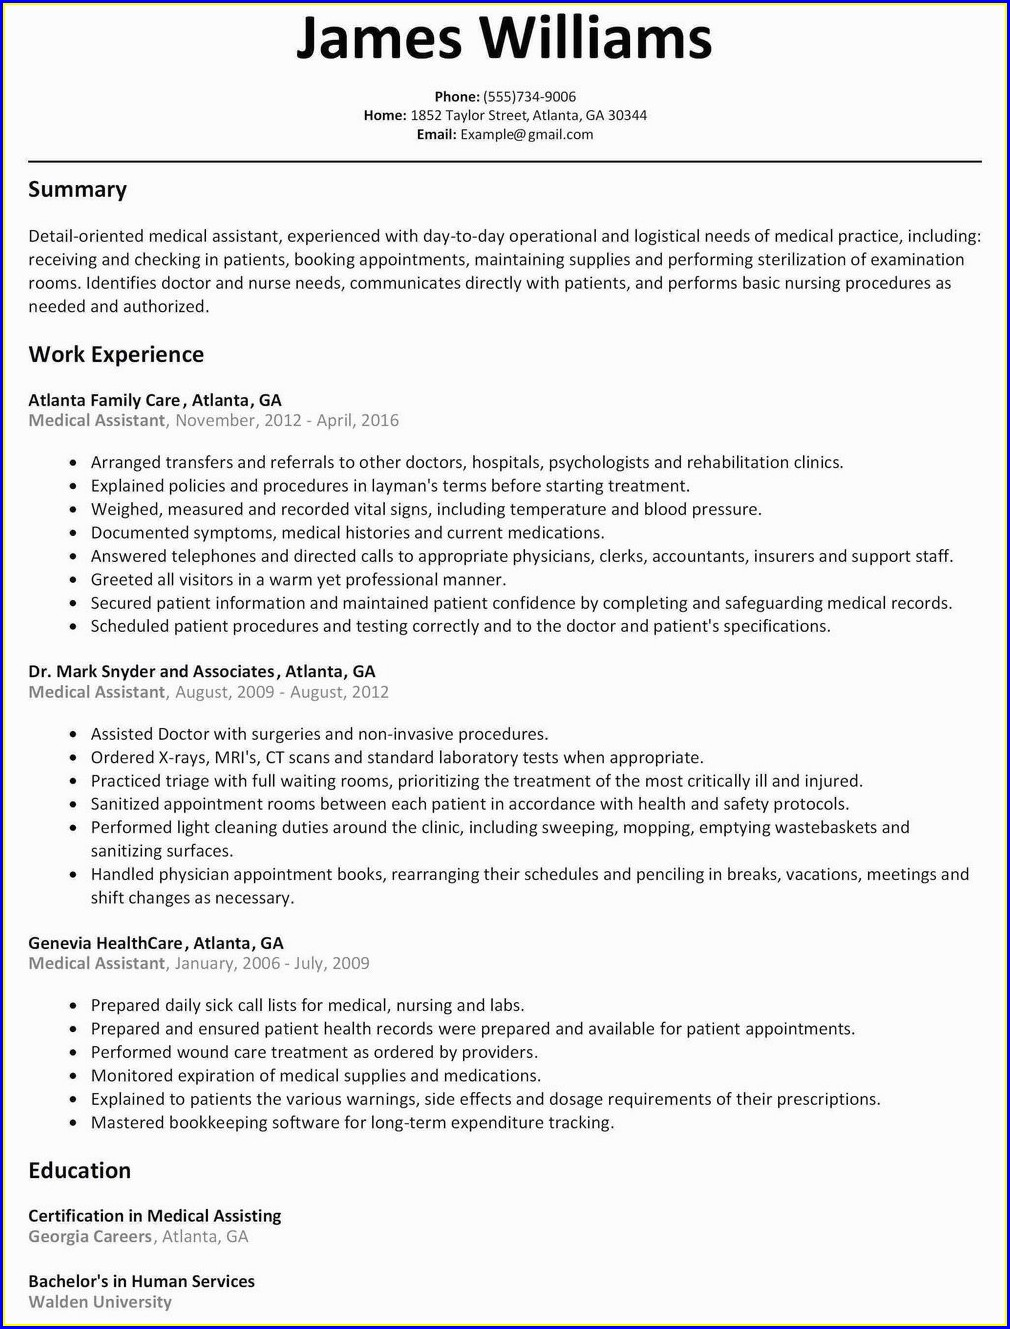 Senior Asp Net Mvc Developer Resume